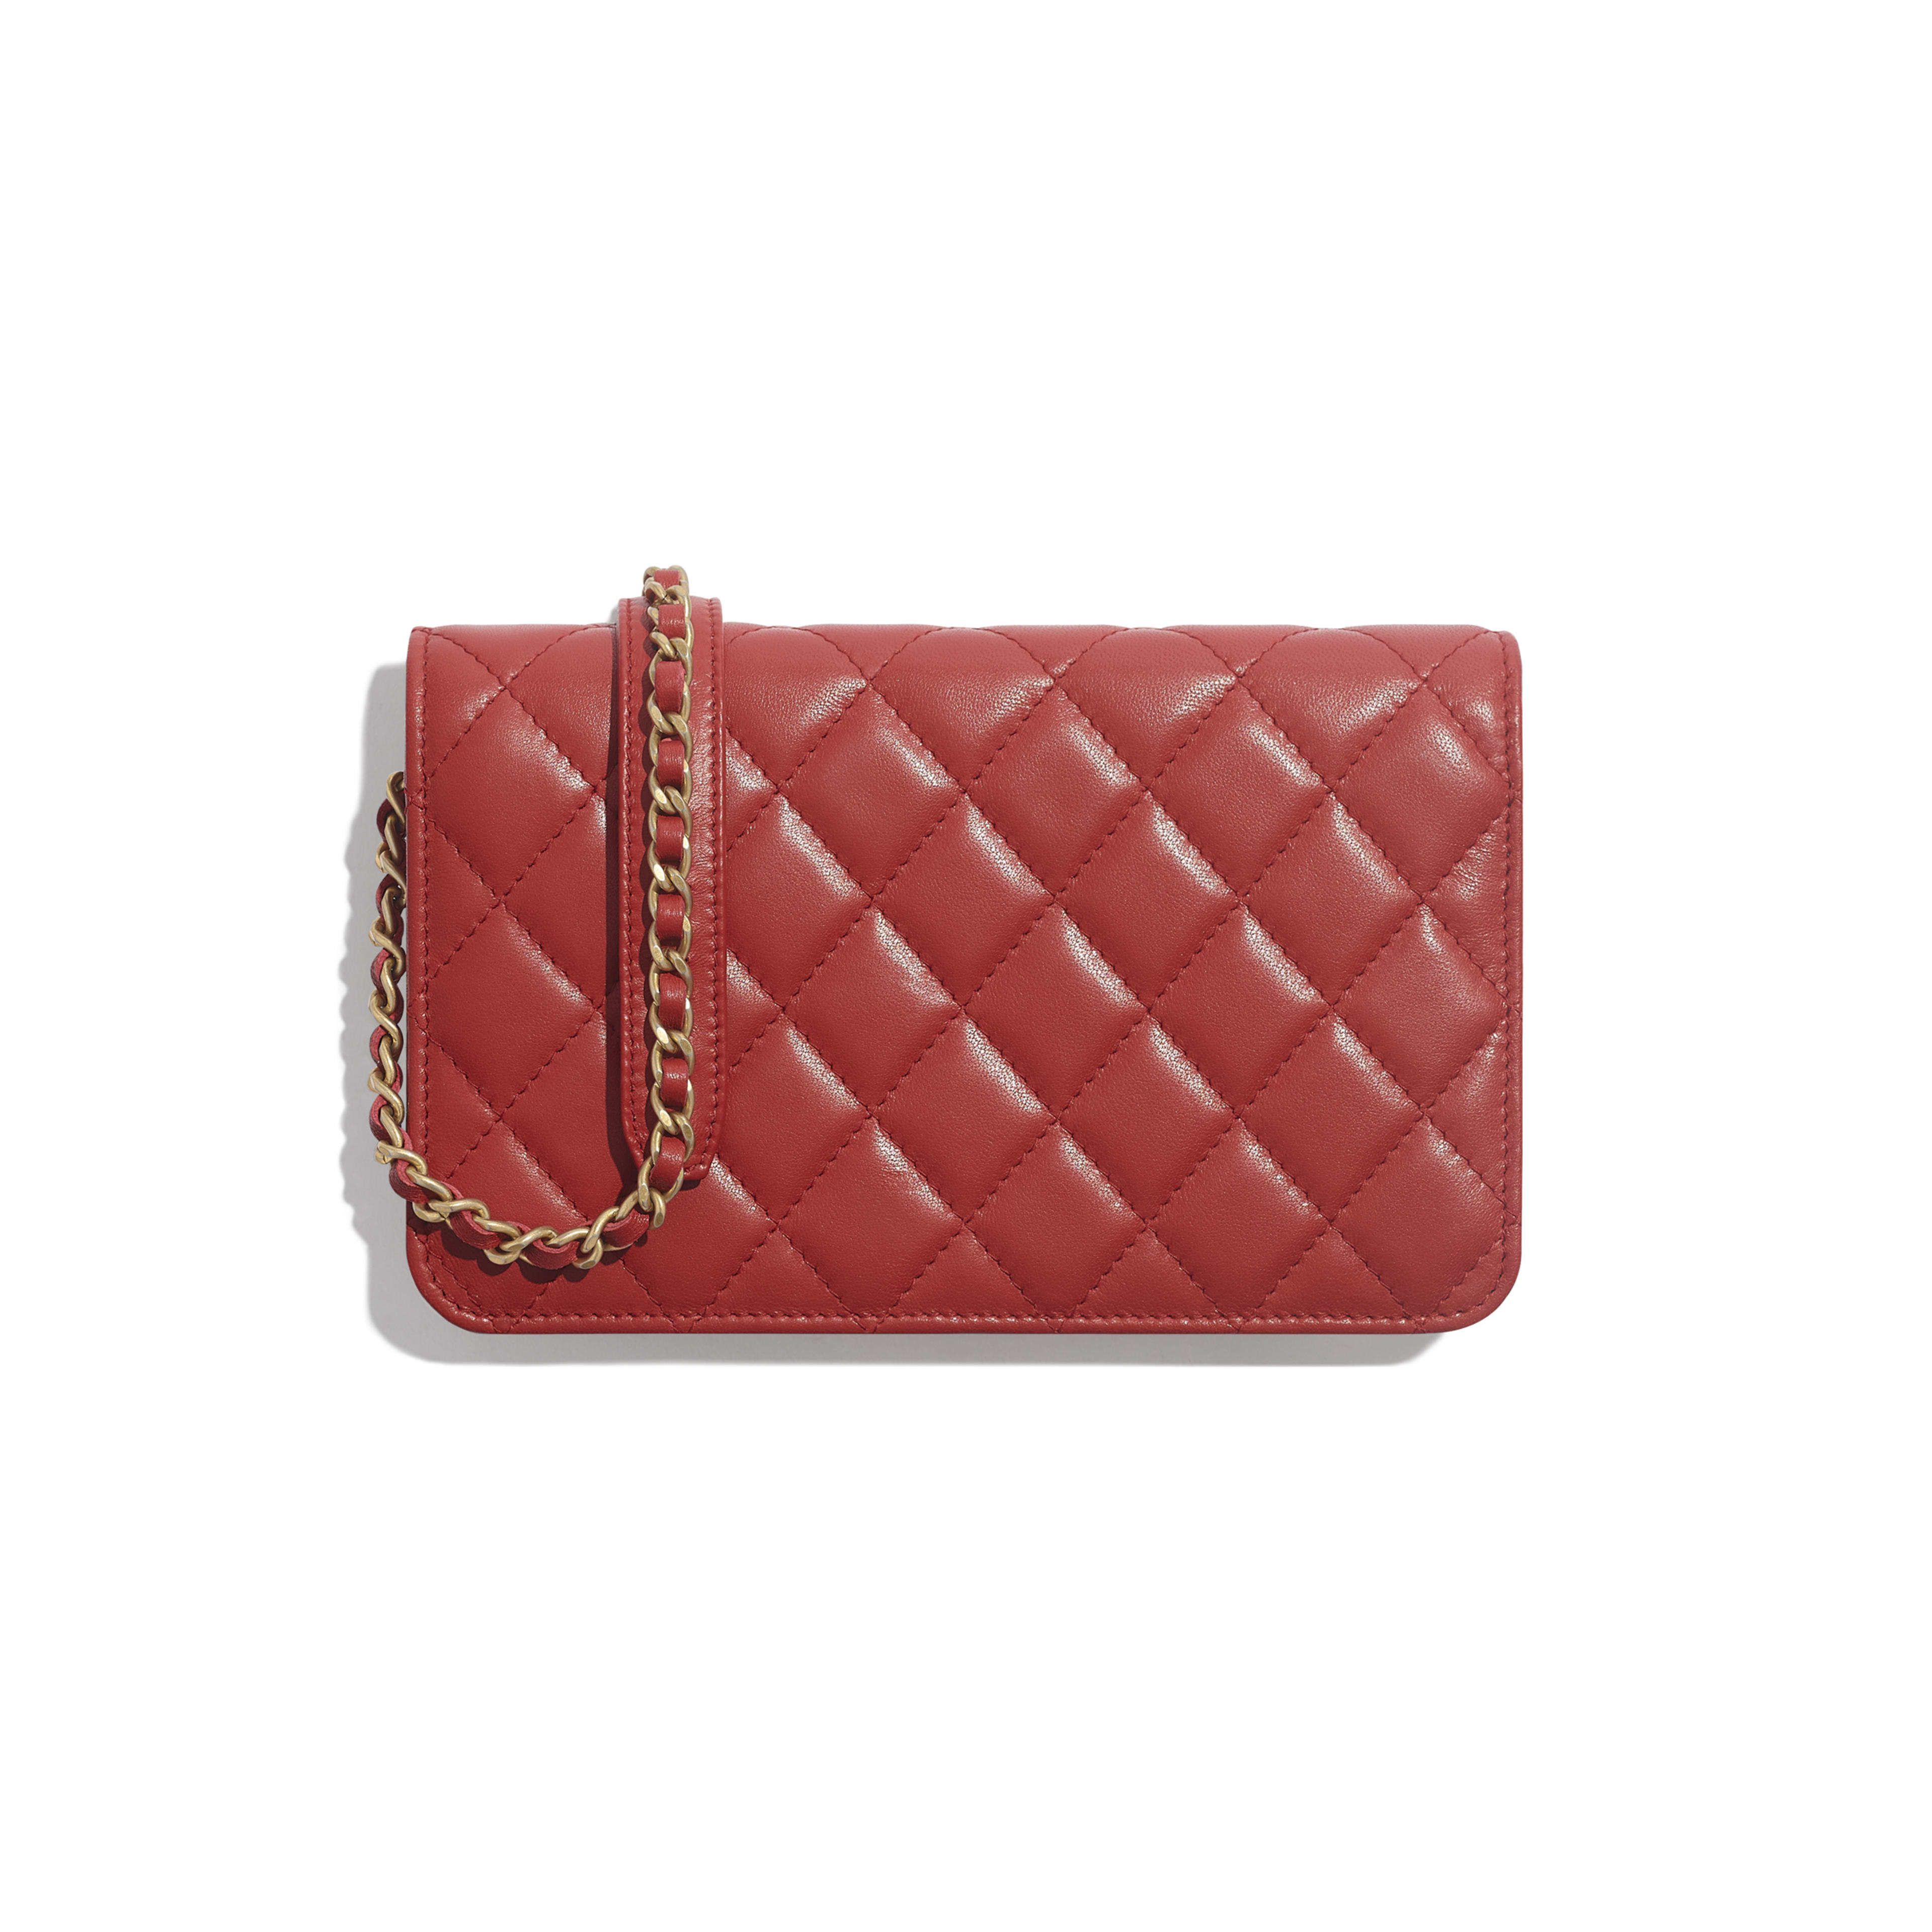 Wallet on Chain - Red - Lambskin & Gold-Tone Metal - Alternative view - see full sized version